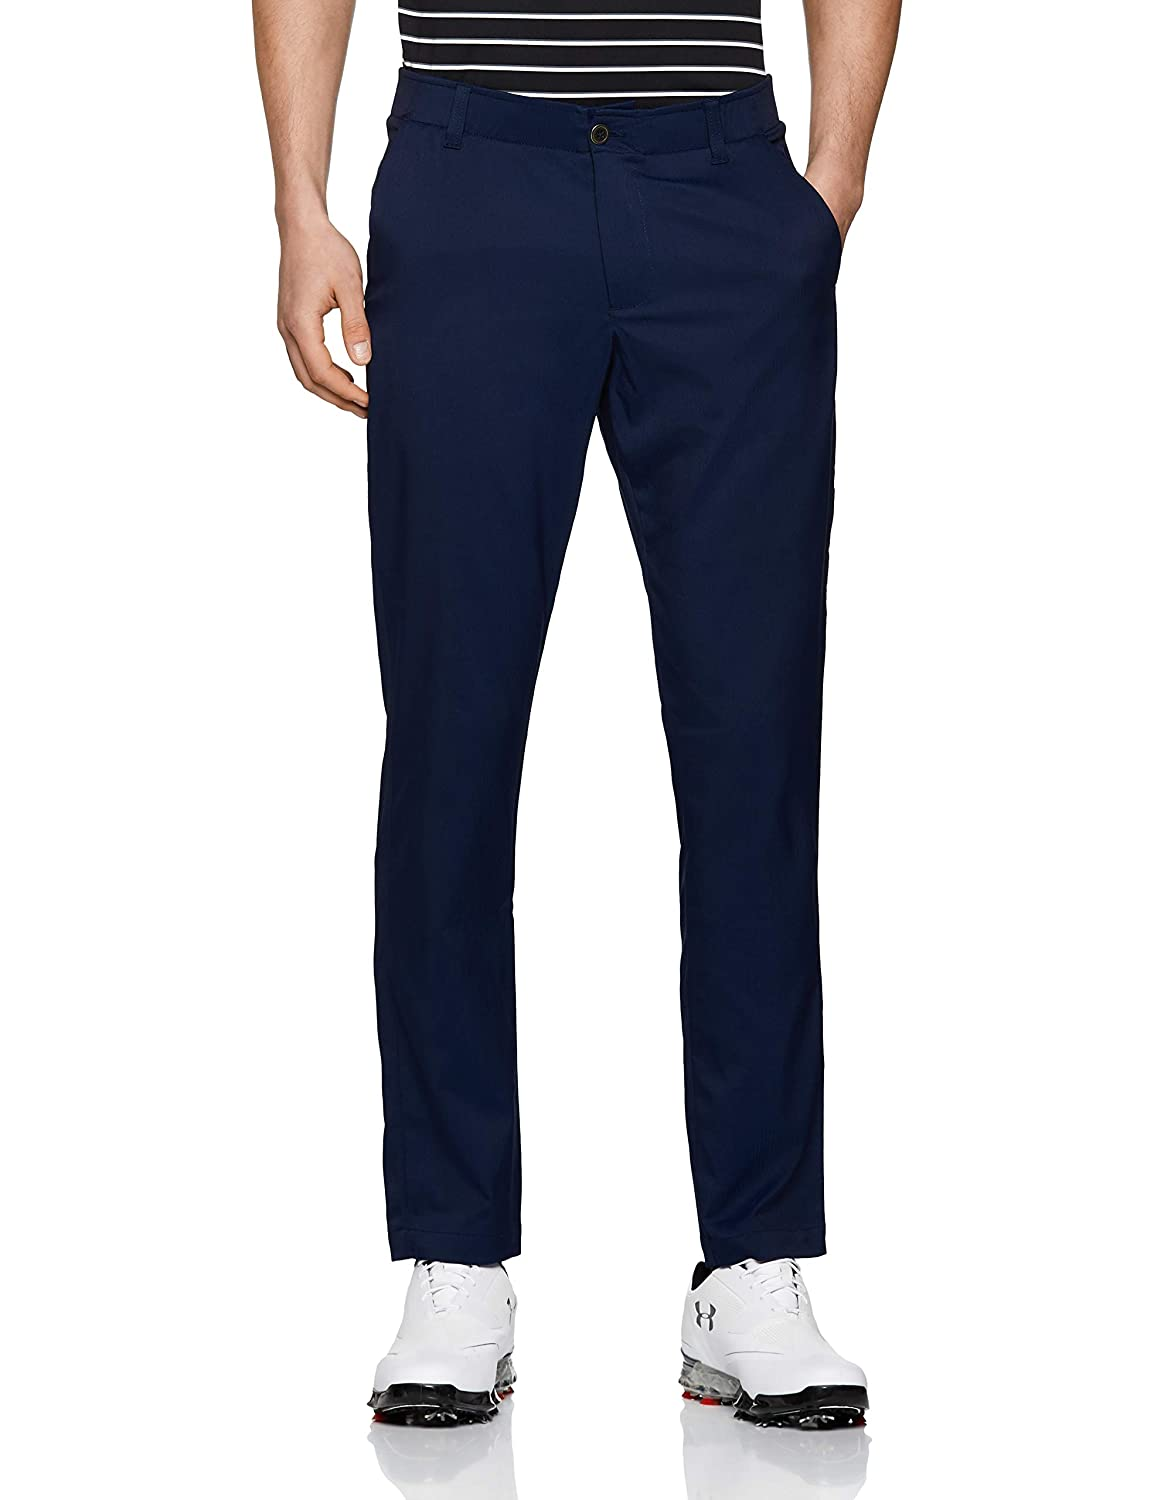 Under Armour Men's Showdown Tape赤 Golf Pants, Academy (408)/Academy, 32/30